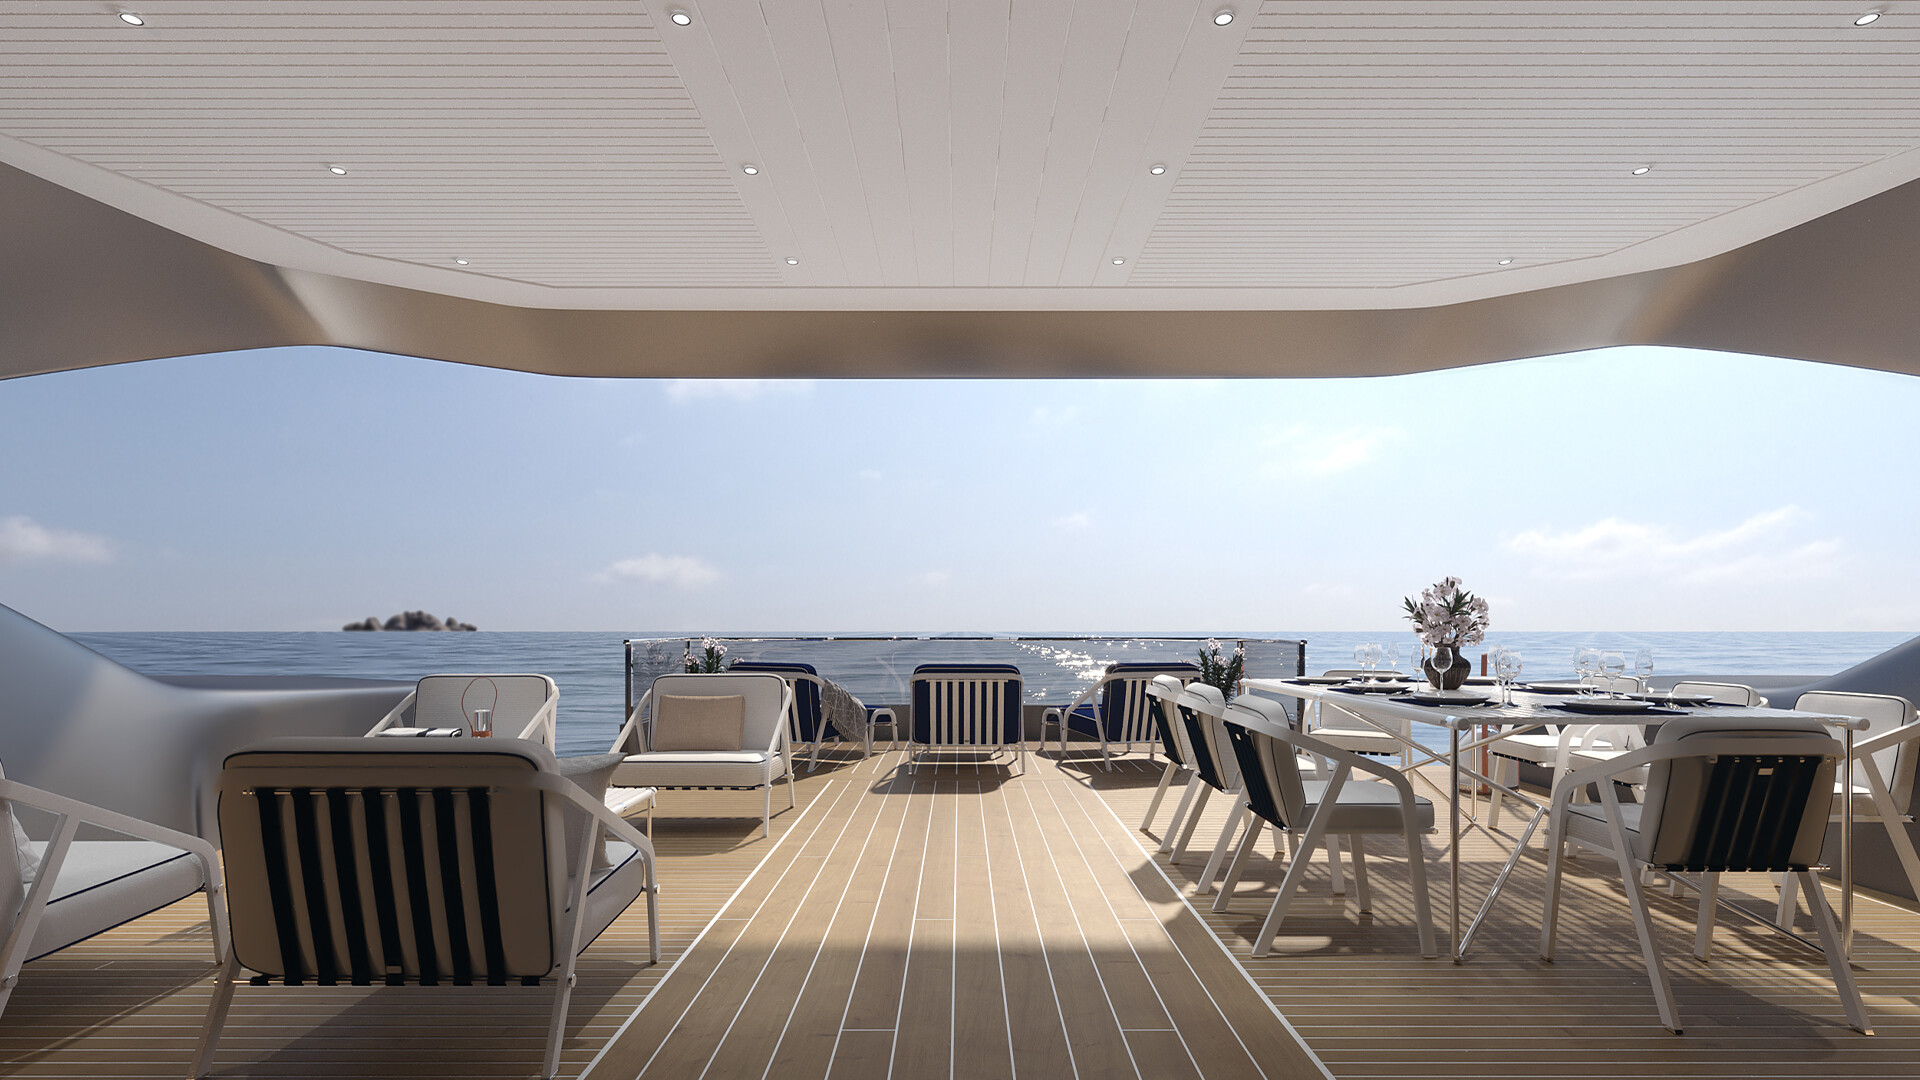 myface-top-yacht-project (2)